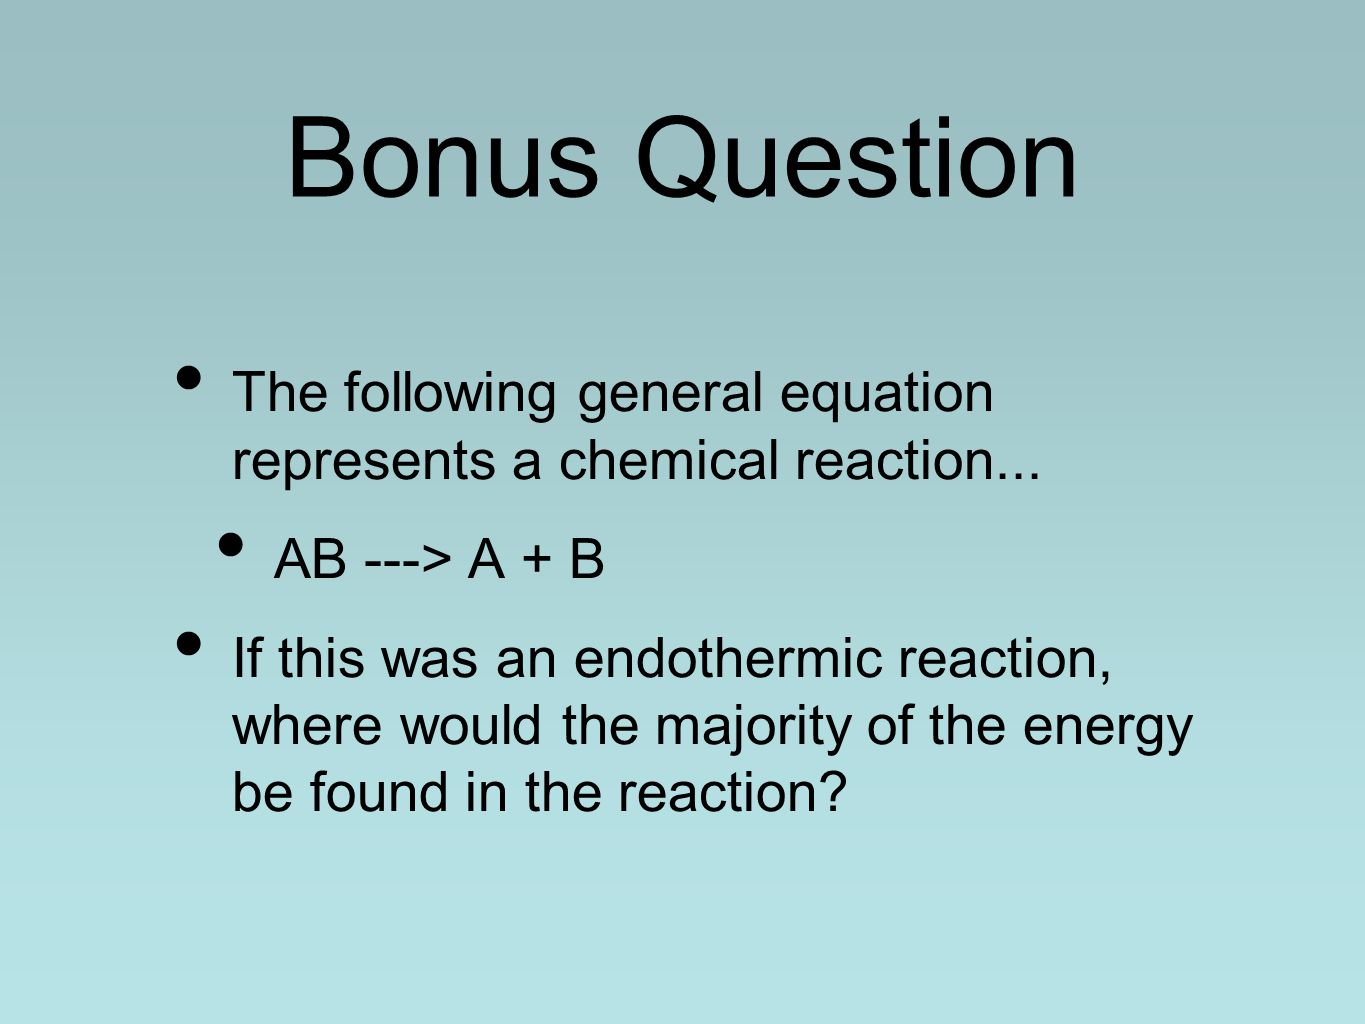 Bonus Question The following general equation represents a chemical reaction...